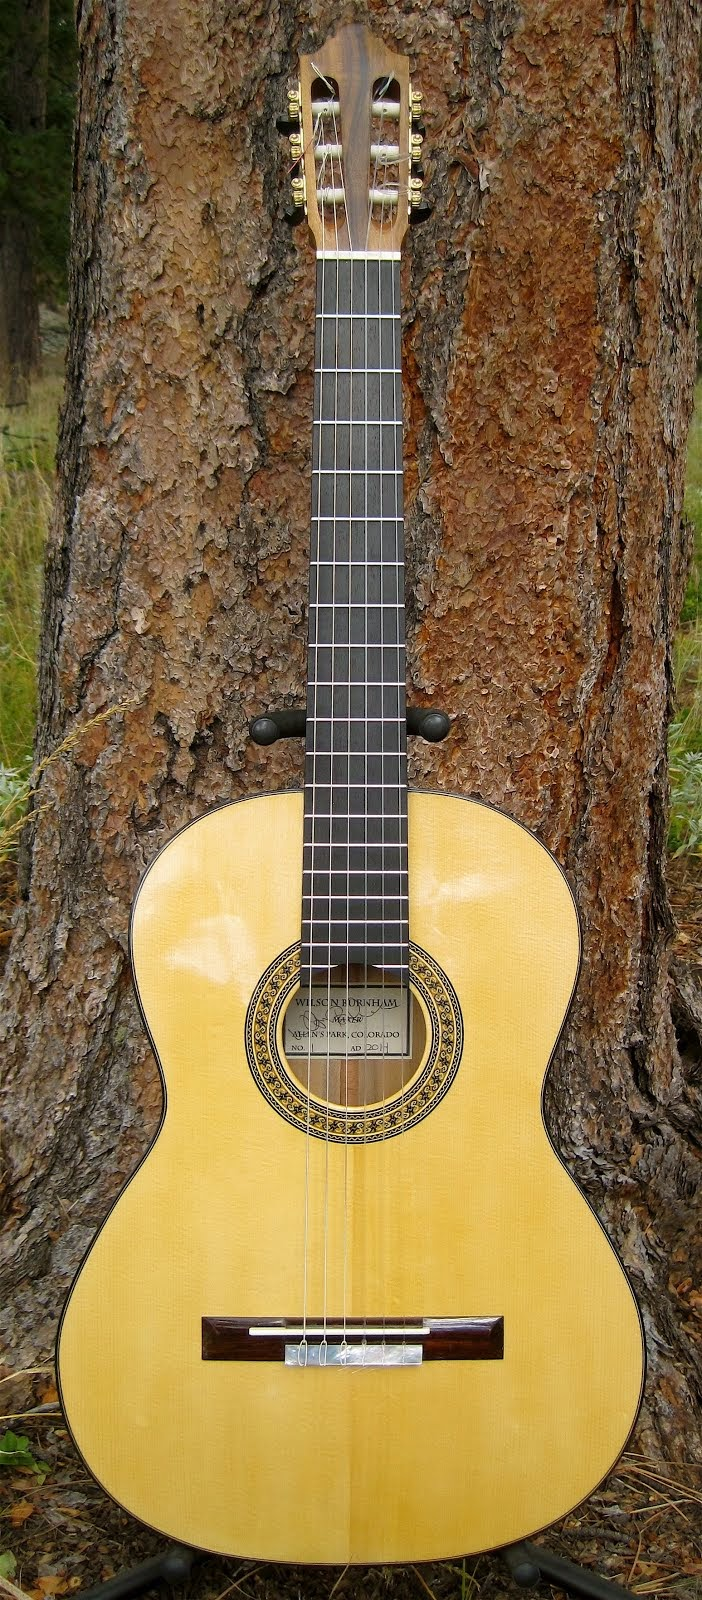 Just Completed!  Antonio Torres Fe 19 Model, Engelmann Spruce/California Laurel